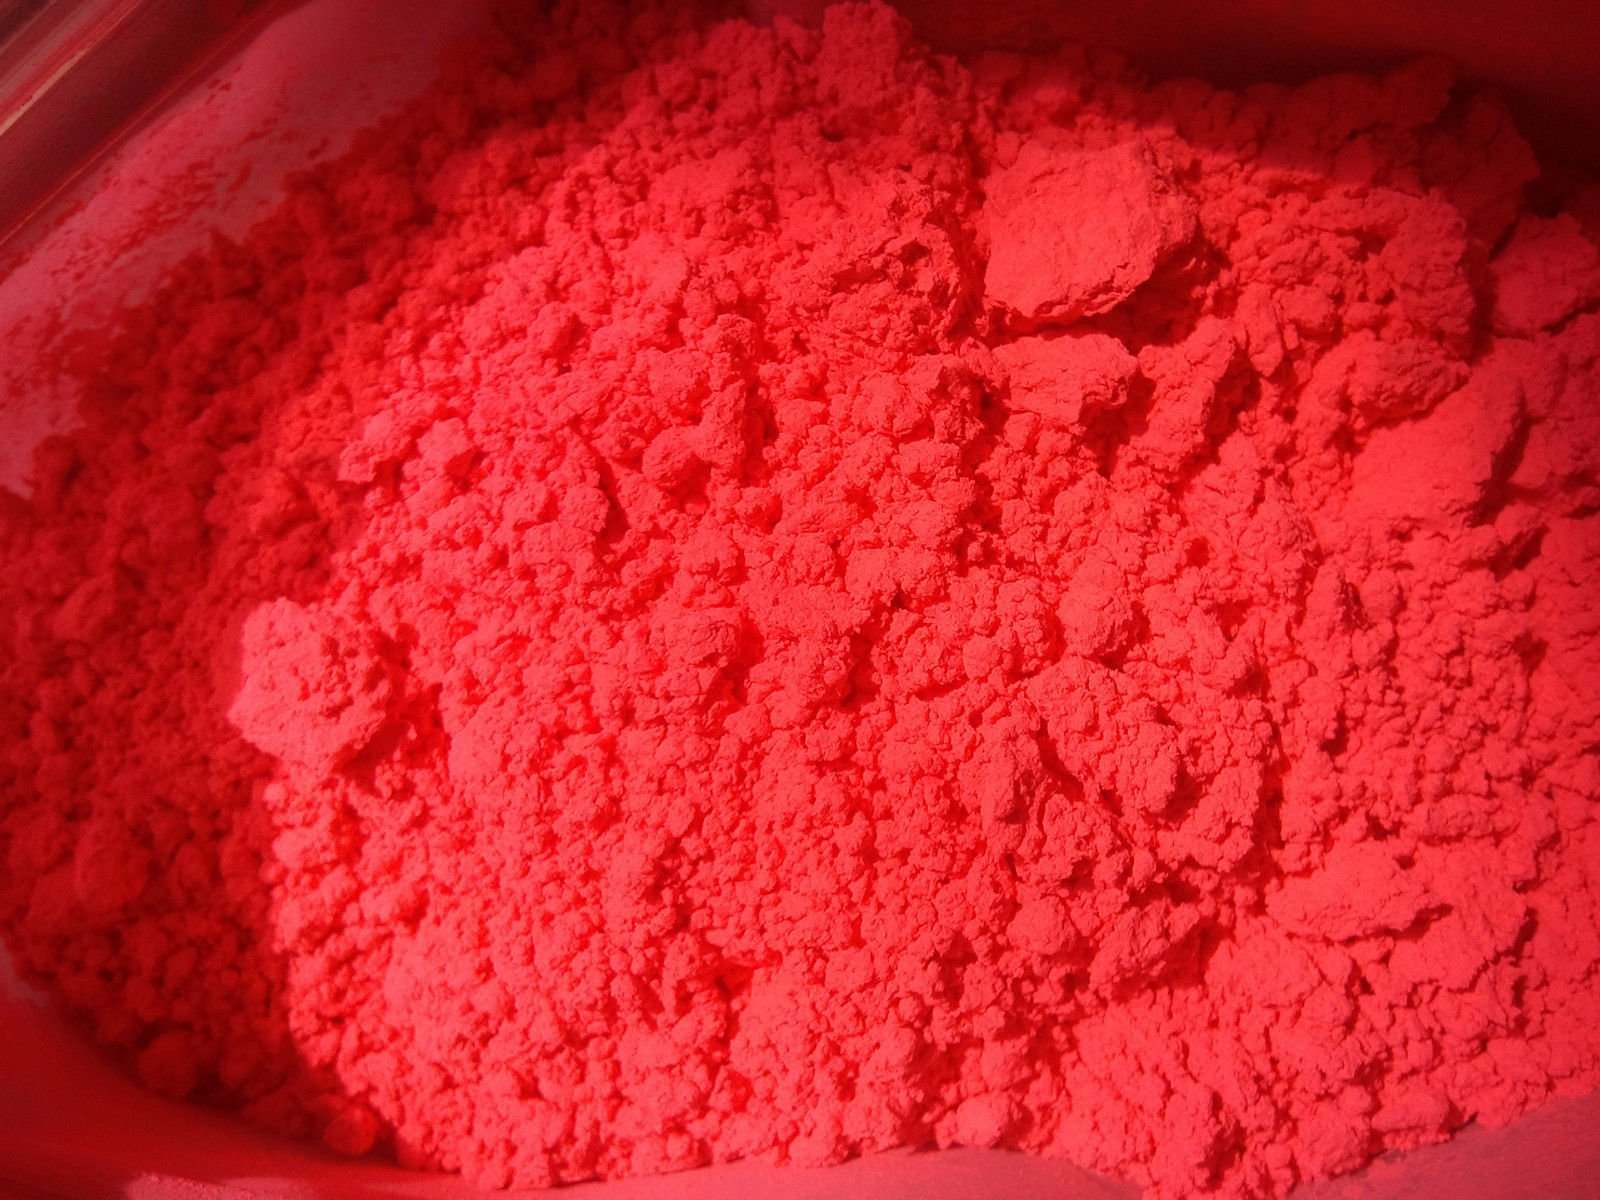 16 OZ FLUORSCENT RED ORANGE PIGMENT FOR SOAP COSMETIC